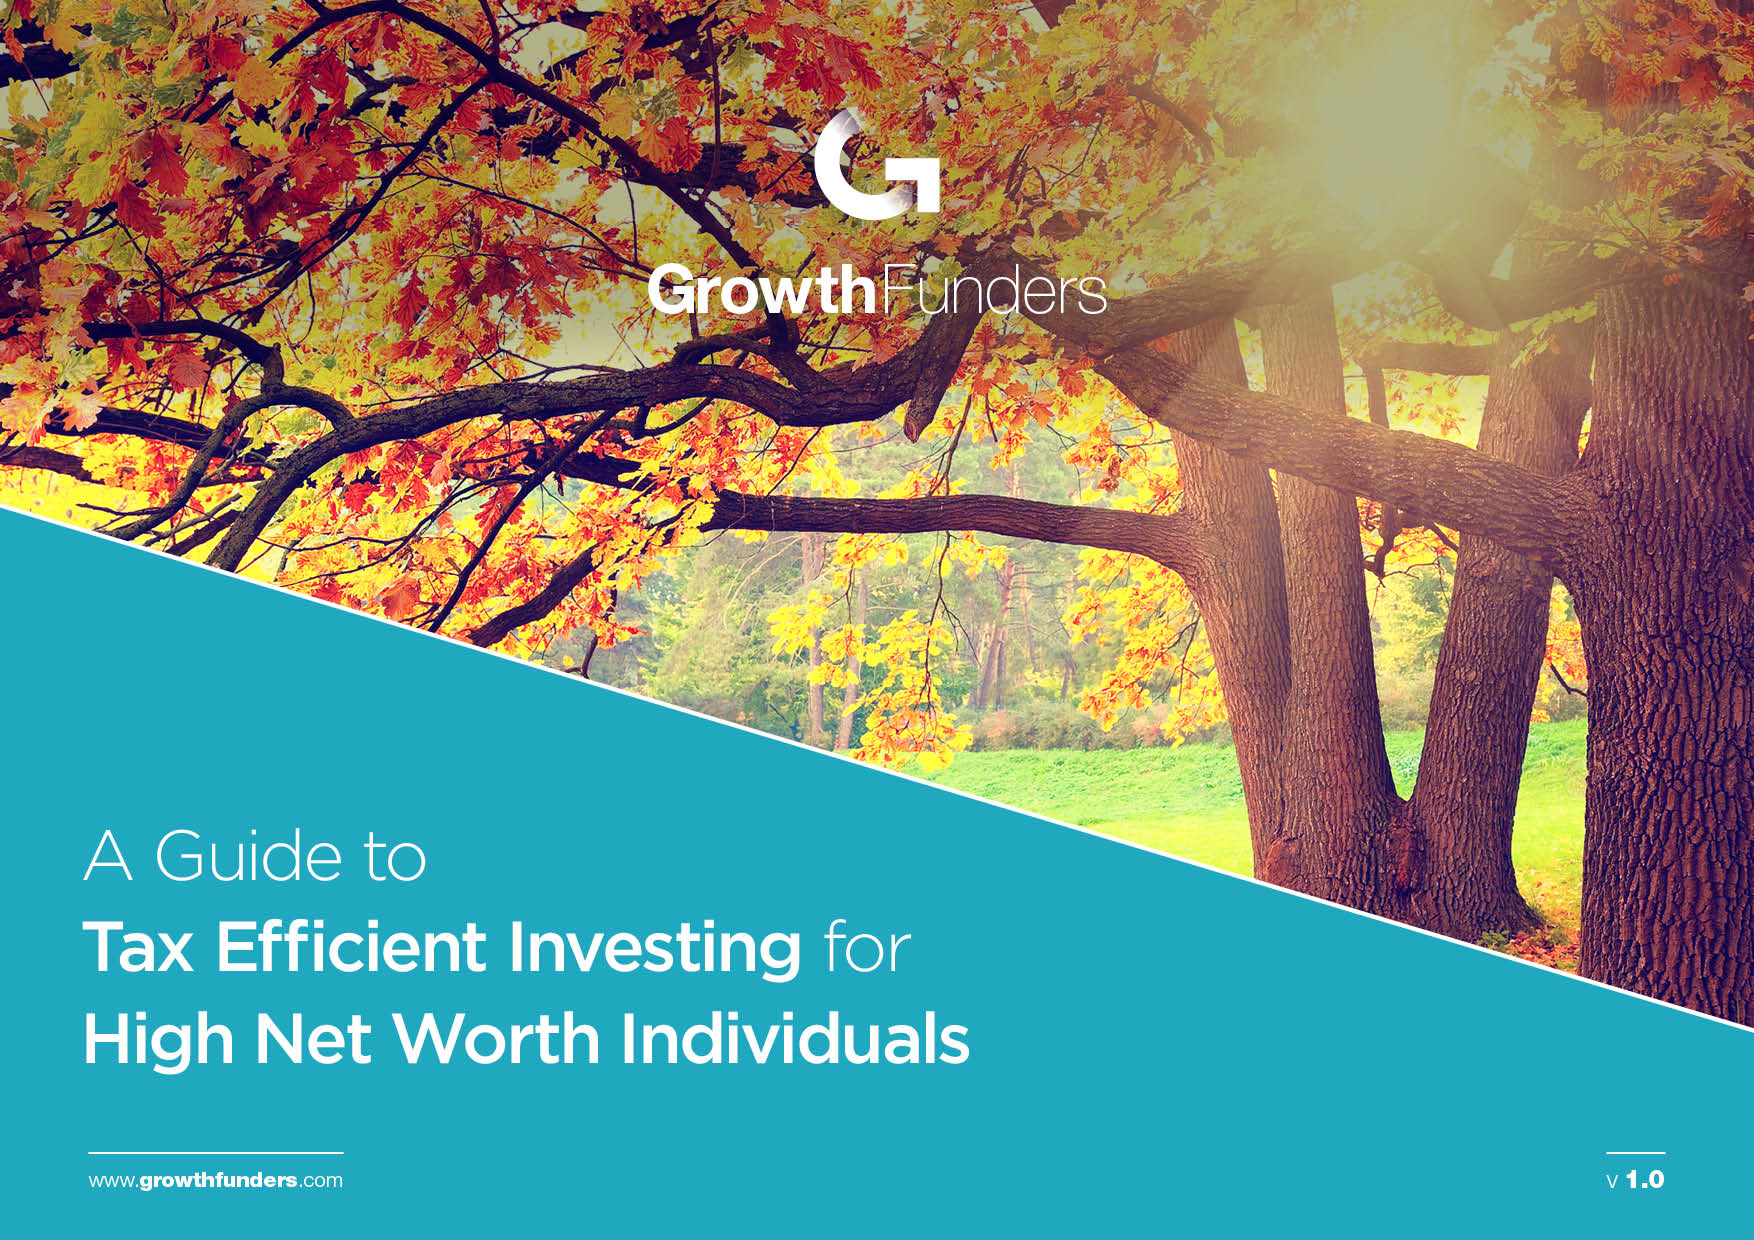 High Net Worth Individuals guide to Tax Efficient Investing COVER.jpg